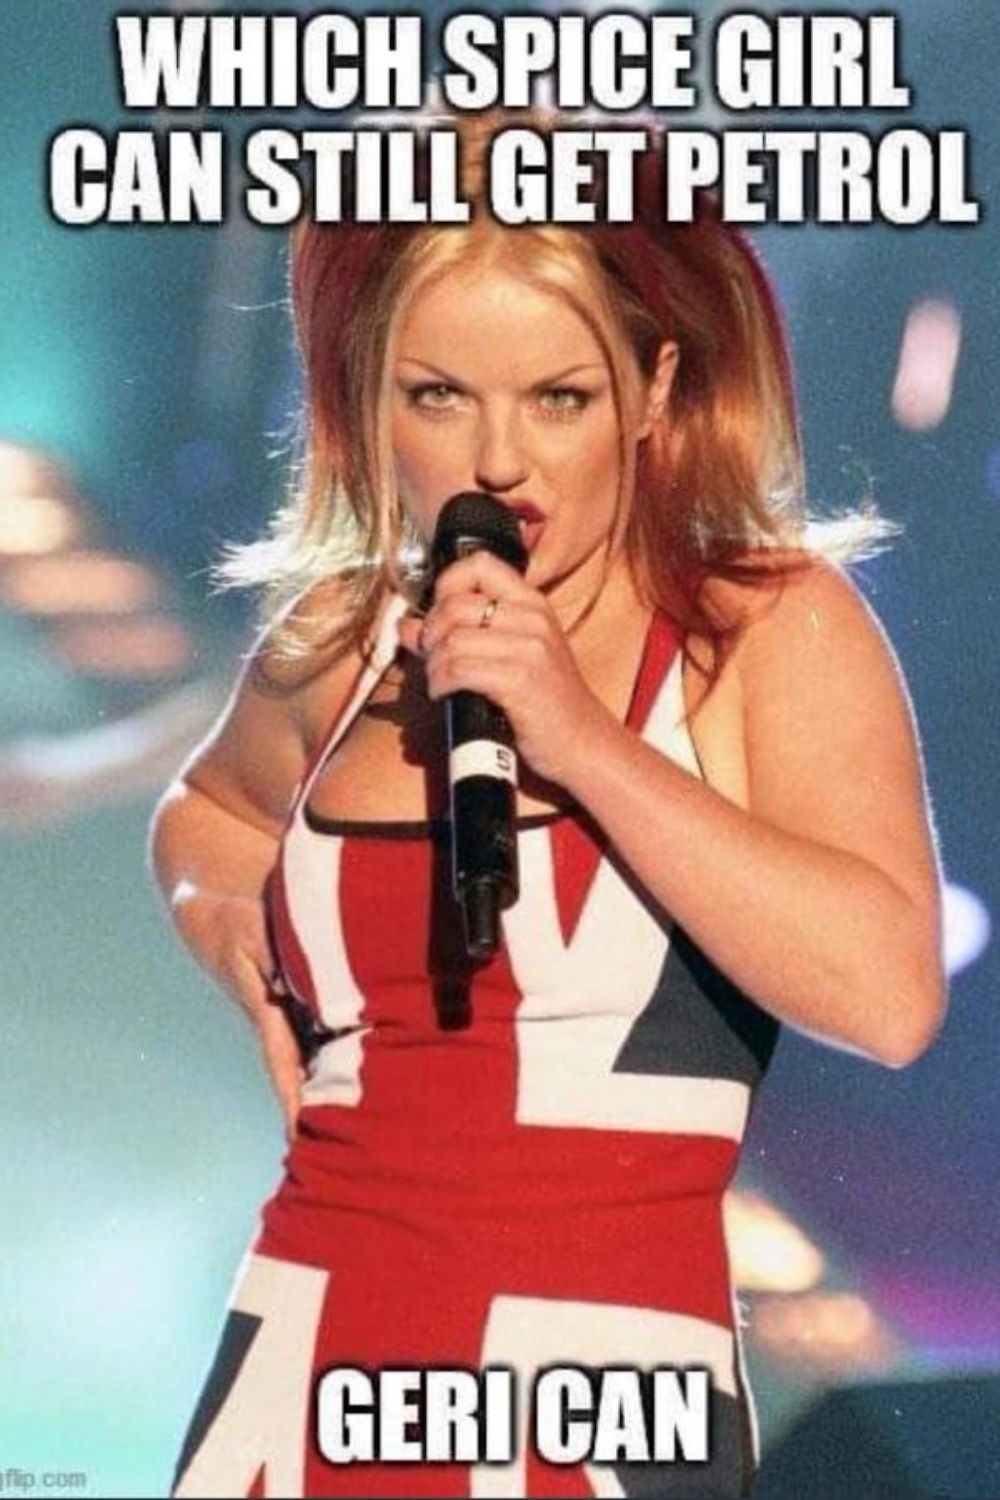 Which Spice Girl can still get petrol?